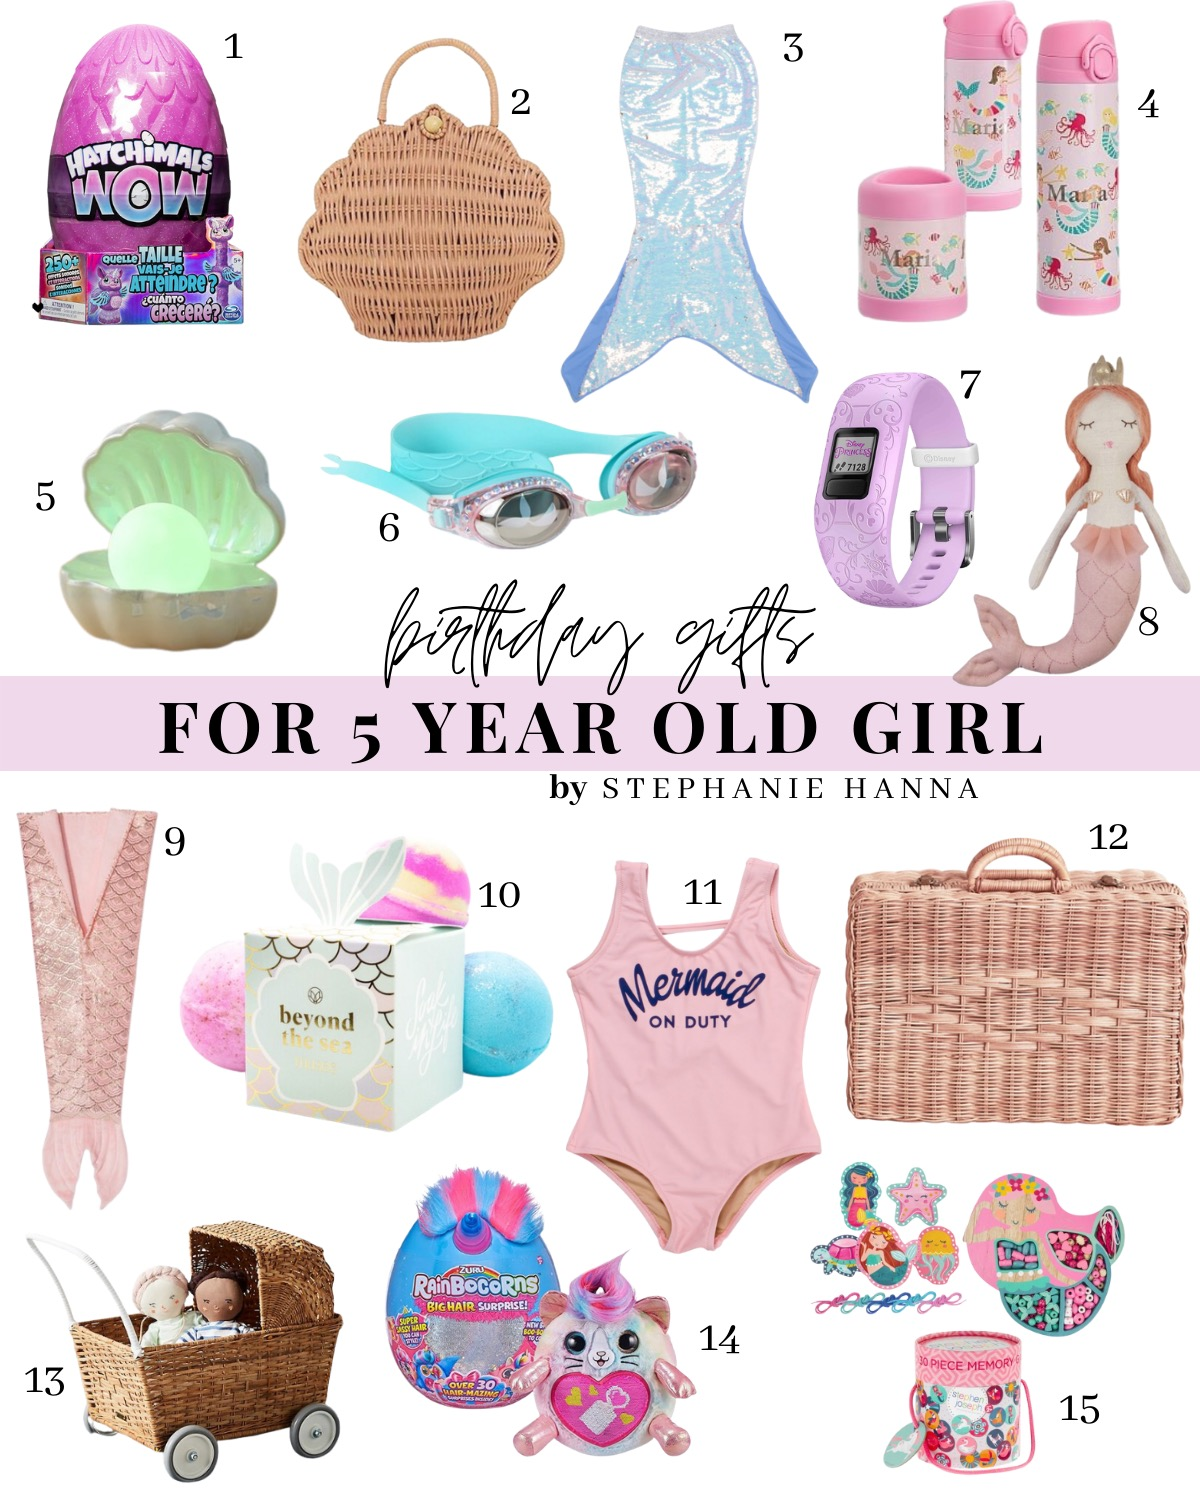 Mermaid Party Gift Guide, 5th birthday party ideas, birthday gifts for 5 year old girls